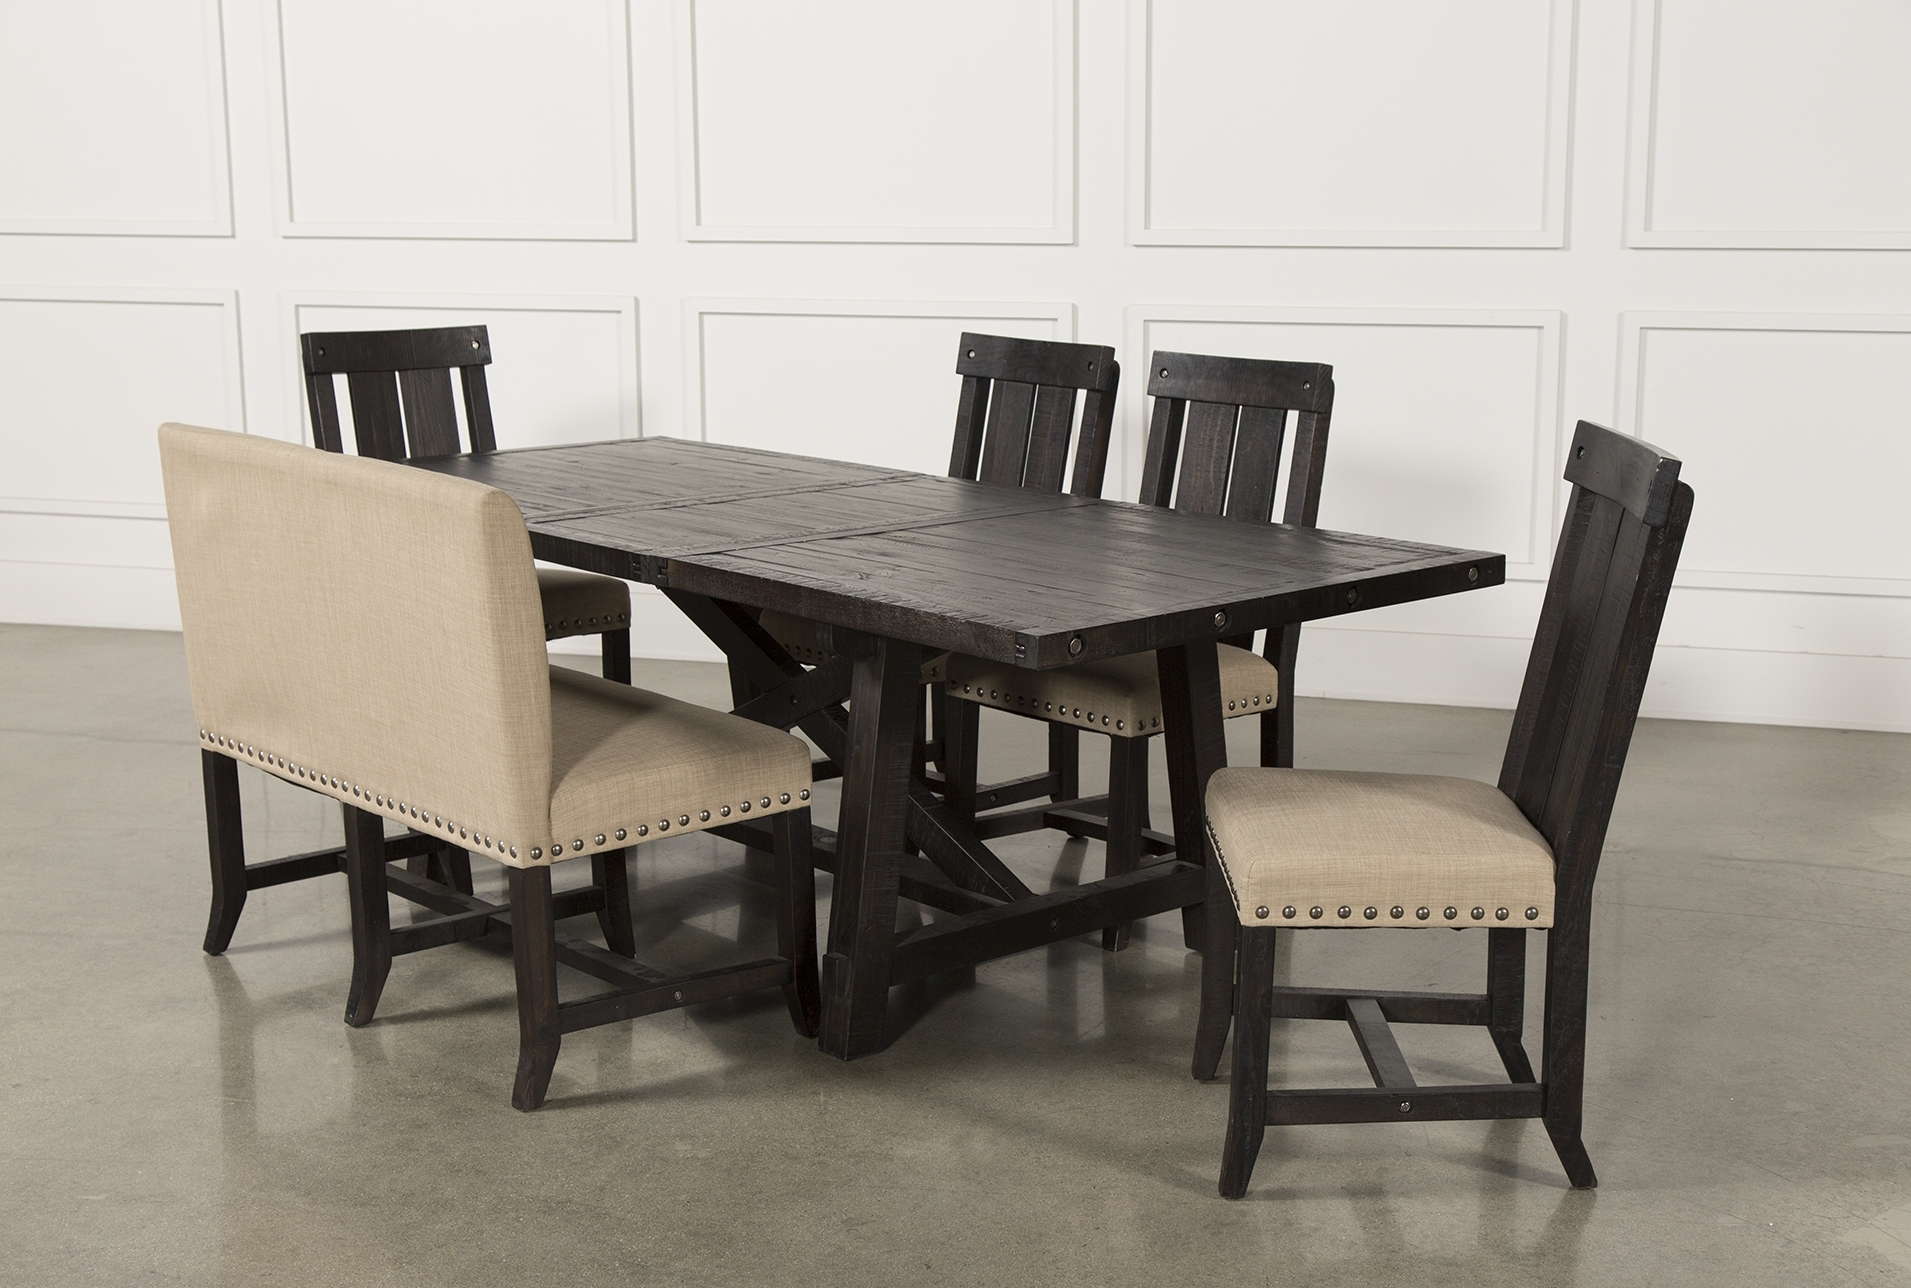 Products With Regard To Jaxon Grey 7 Piece Rectangle Extension Dining Sets With Wood Chairs (Gallery 5 of 25)